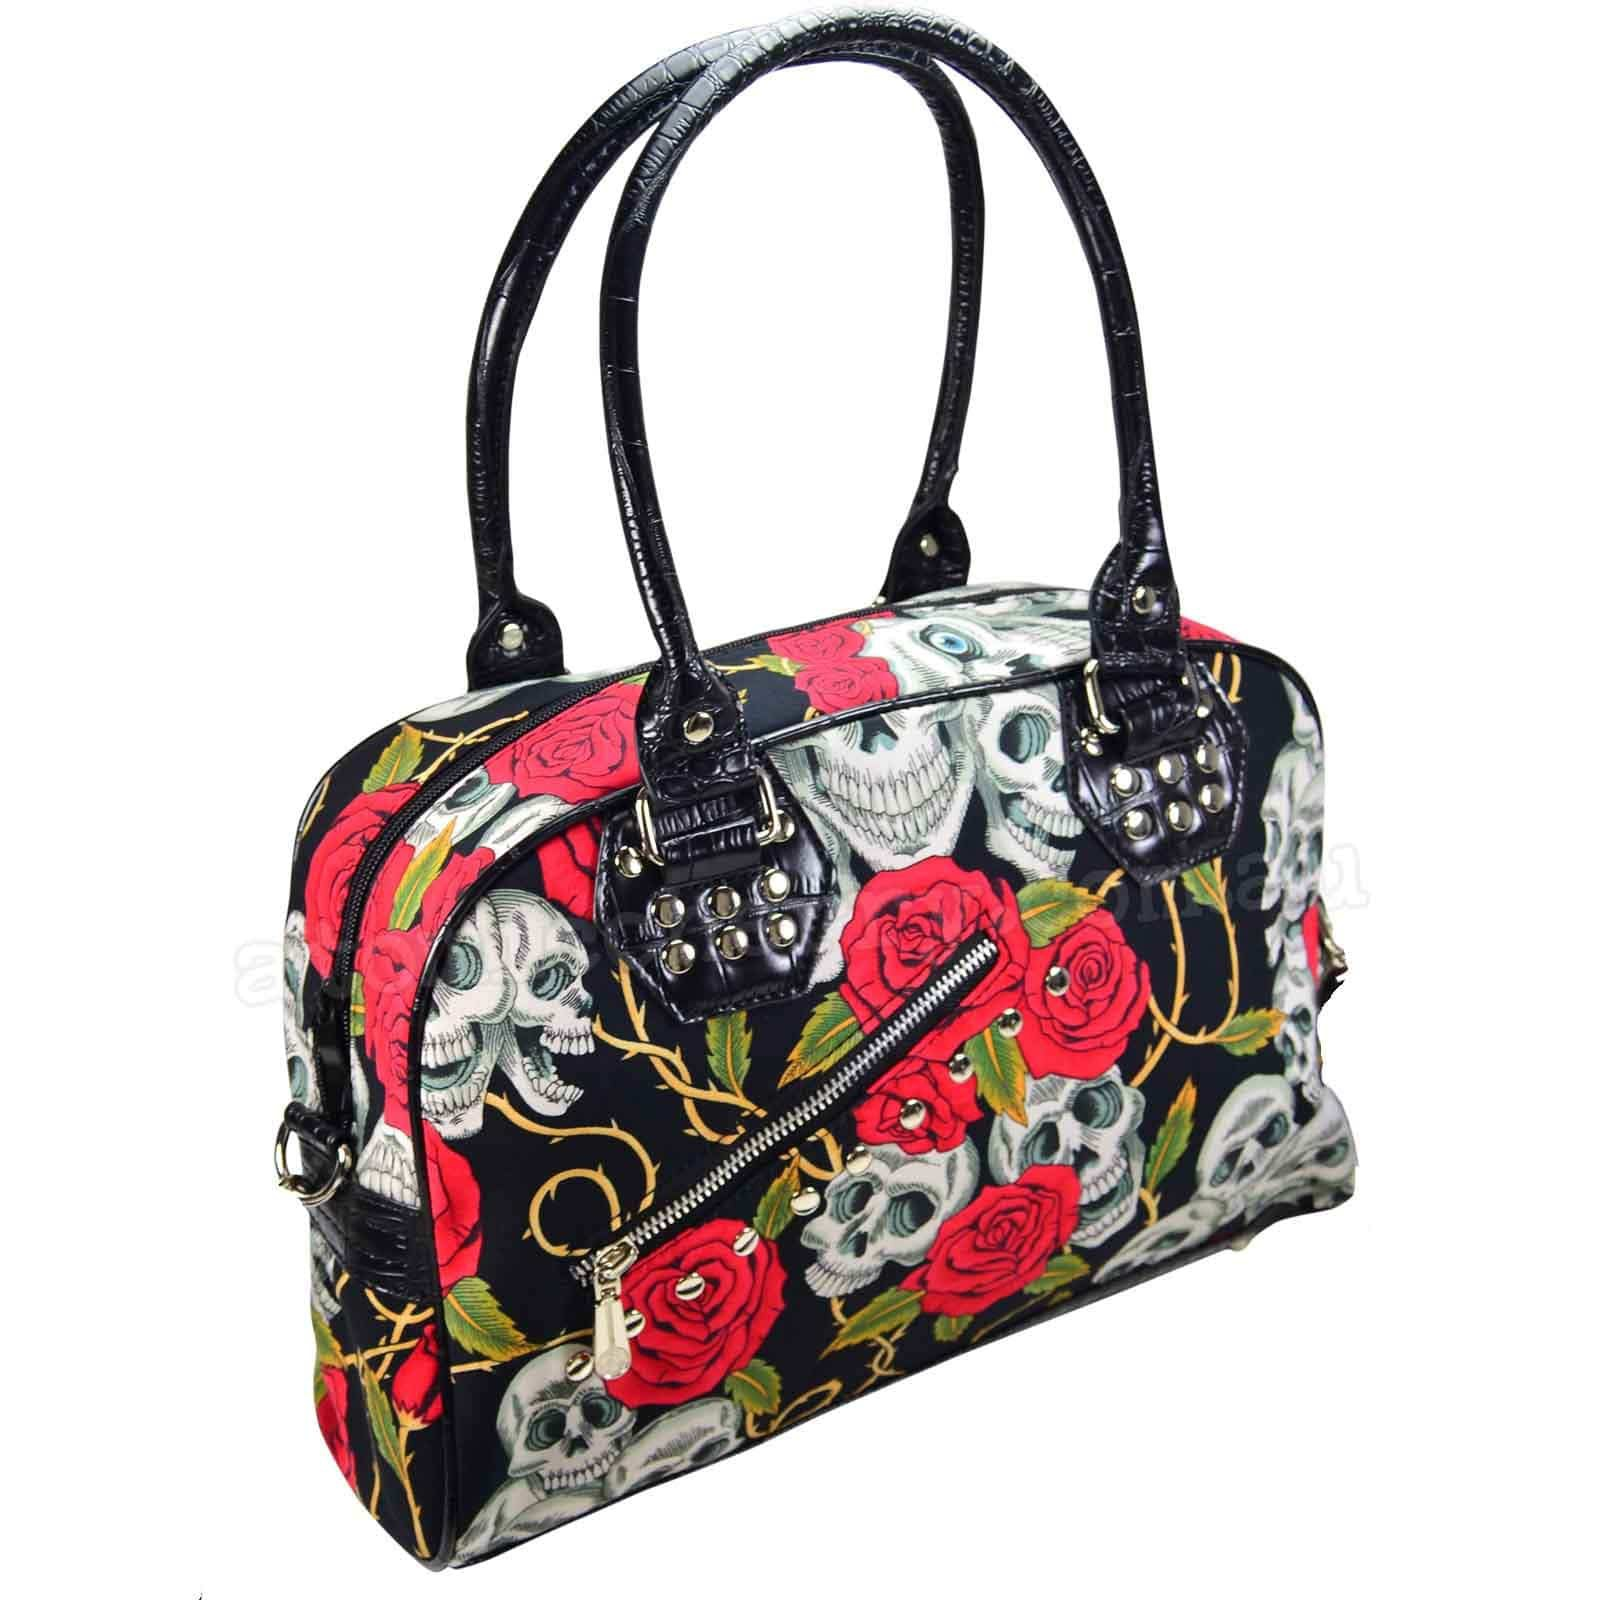 Banned Rockabilly Skulls /& Roses Handbag Pin Up 50/'s Alternative Style Handbag